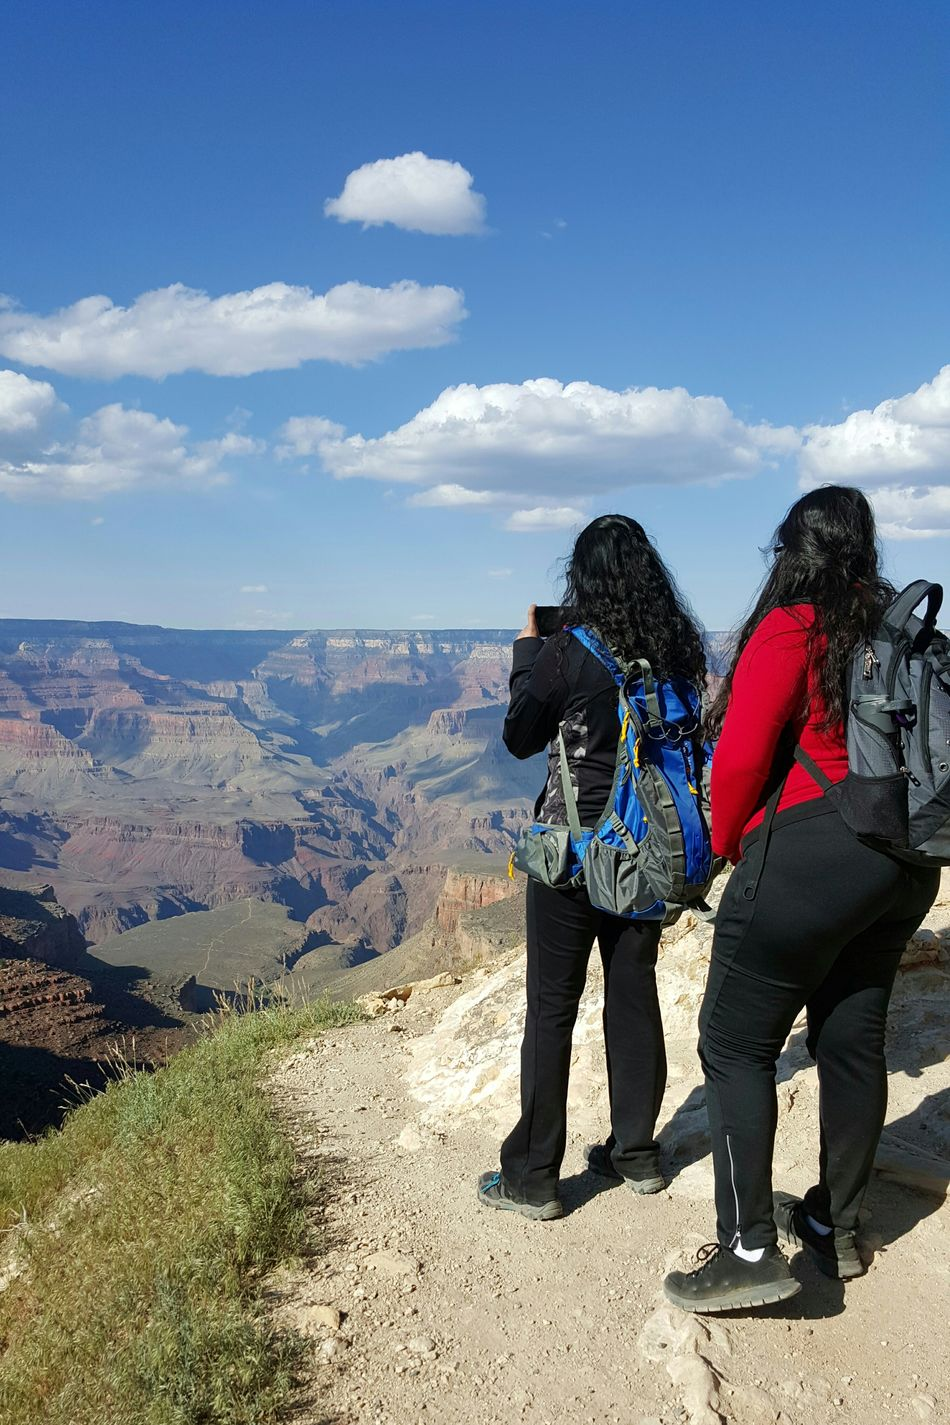 Togetherness Bonding Young Adult Non Recognizable People Women Active Activewear Two People Full Length Outdoors Vacations Friendship People Day Sky Scenic Vista Photography Hiking Female Hikers Active Lifestyles Enjoying The View Savoring The Moment Grand Canyon South Rim Grand Canyon National Park Arizona